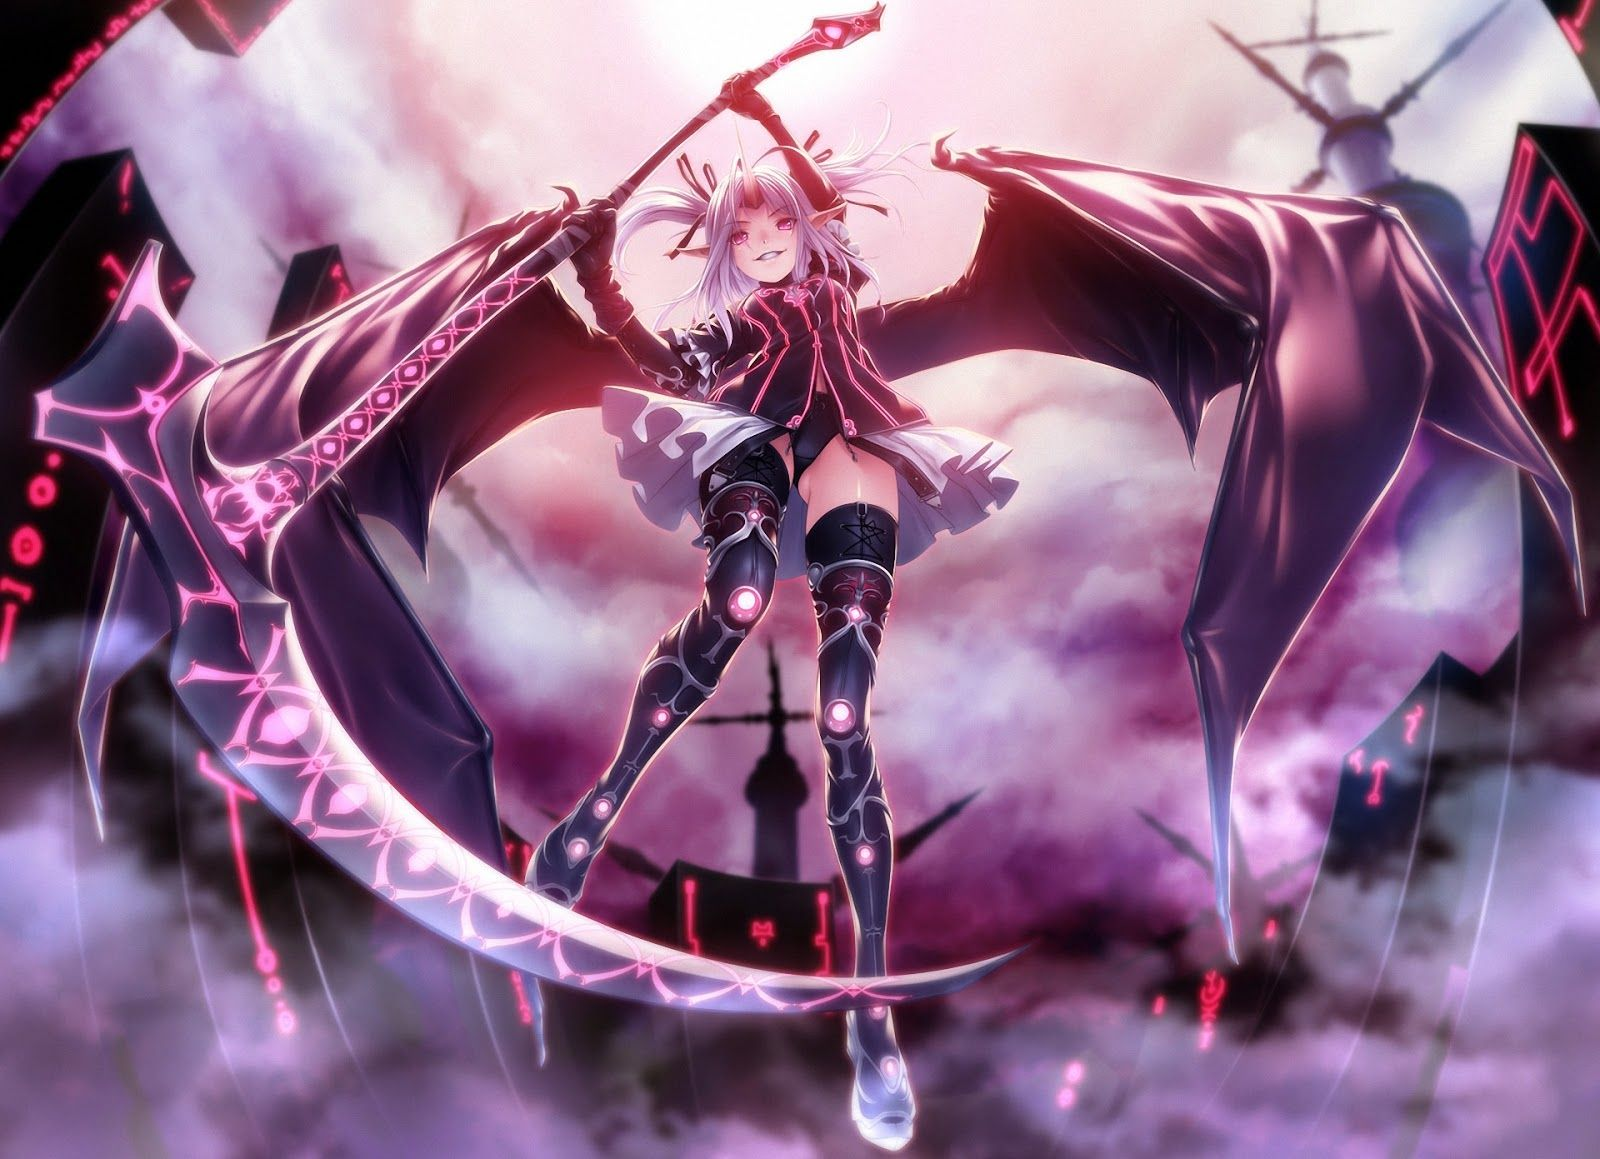 anime girl with dragon wings - Google Search | Trumpet ...